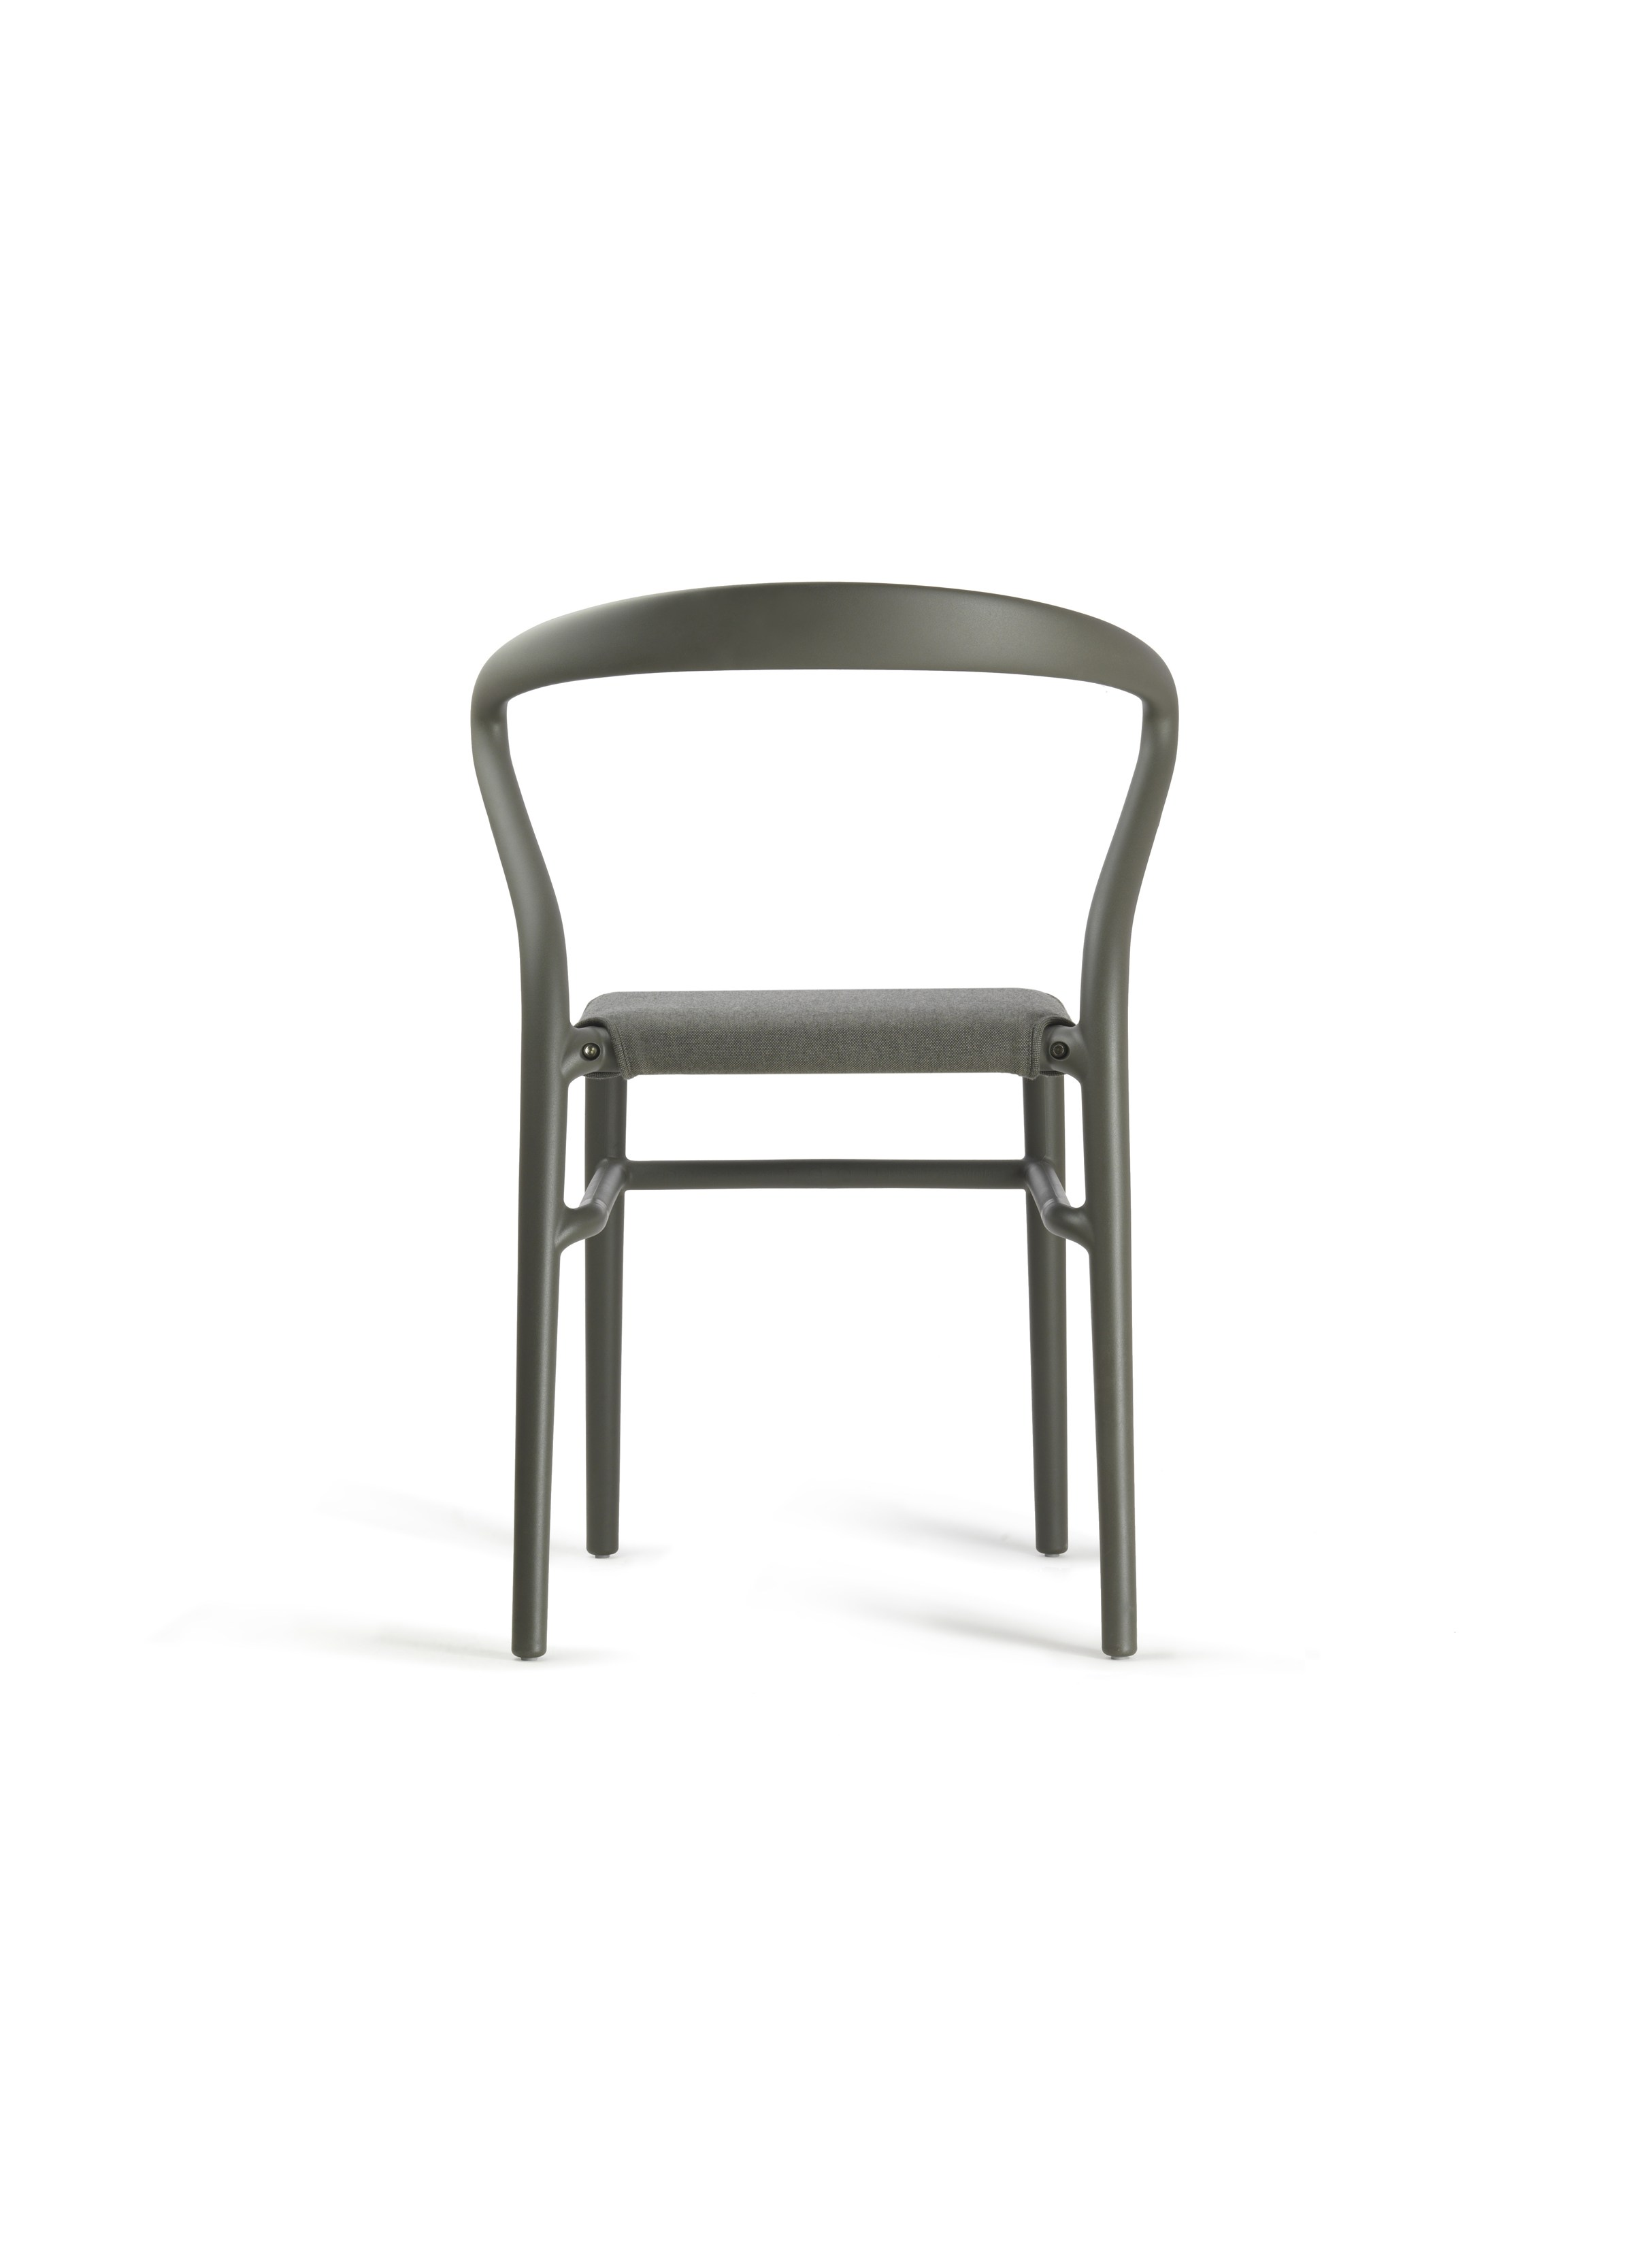 joi twentyfour garden chair by kubikoff design simone viola. Black Bedroom Furniture Sets. Home Design Ideas